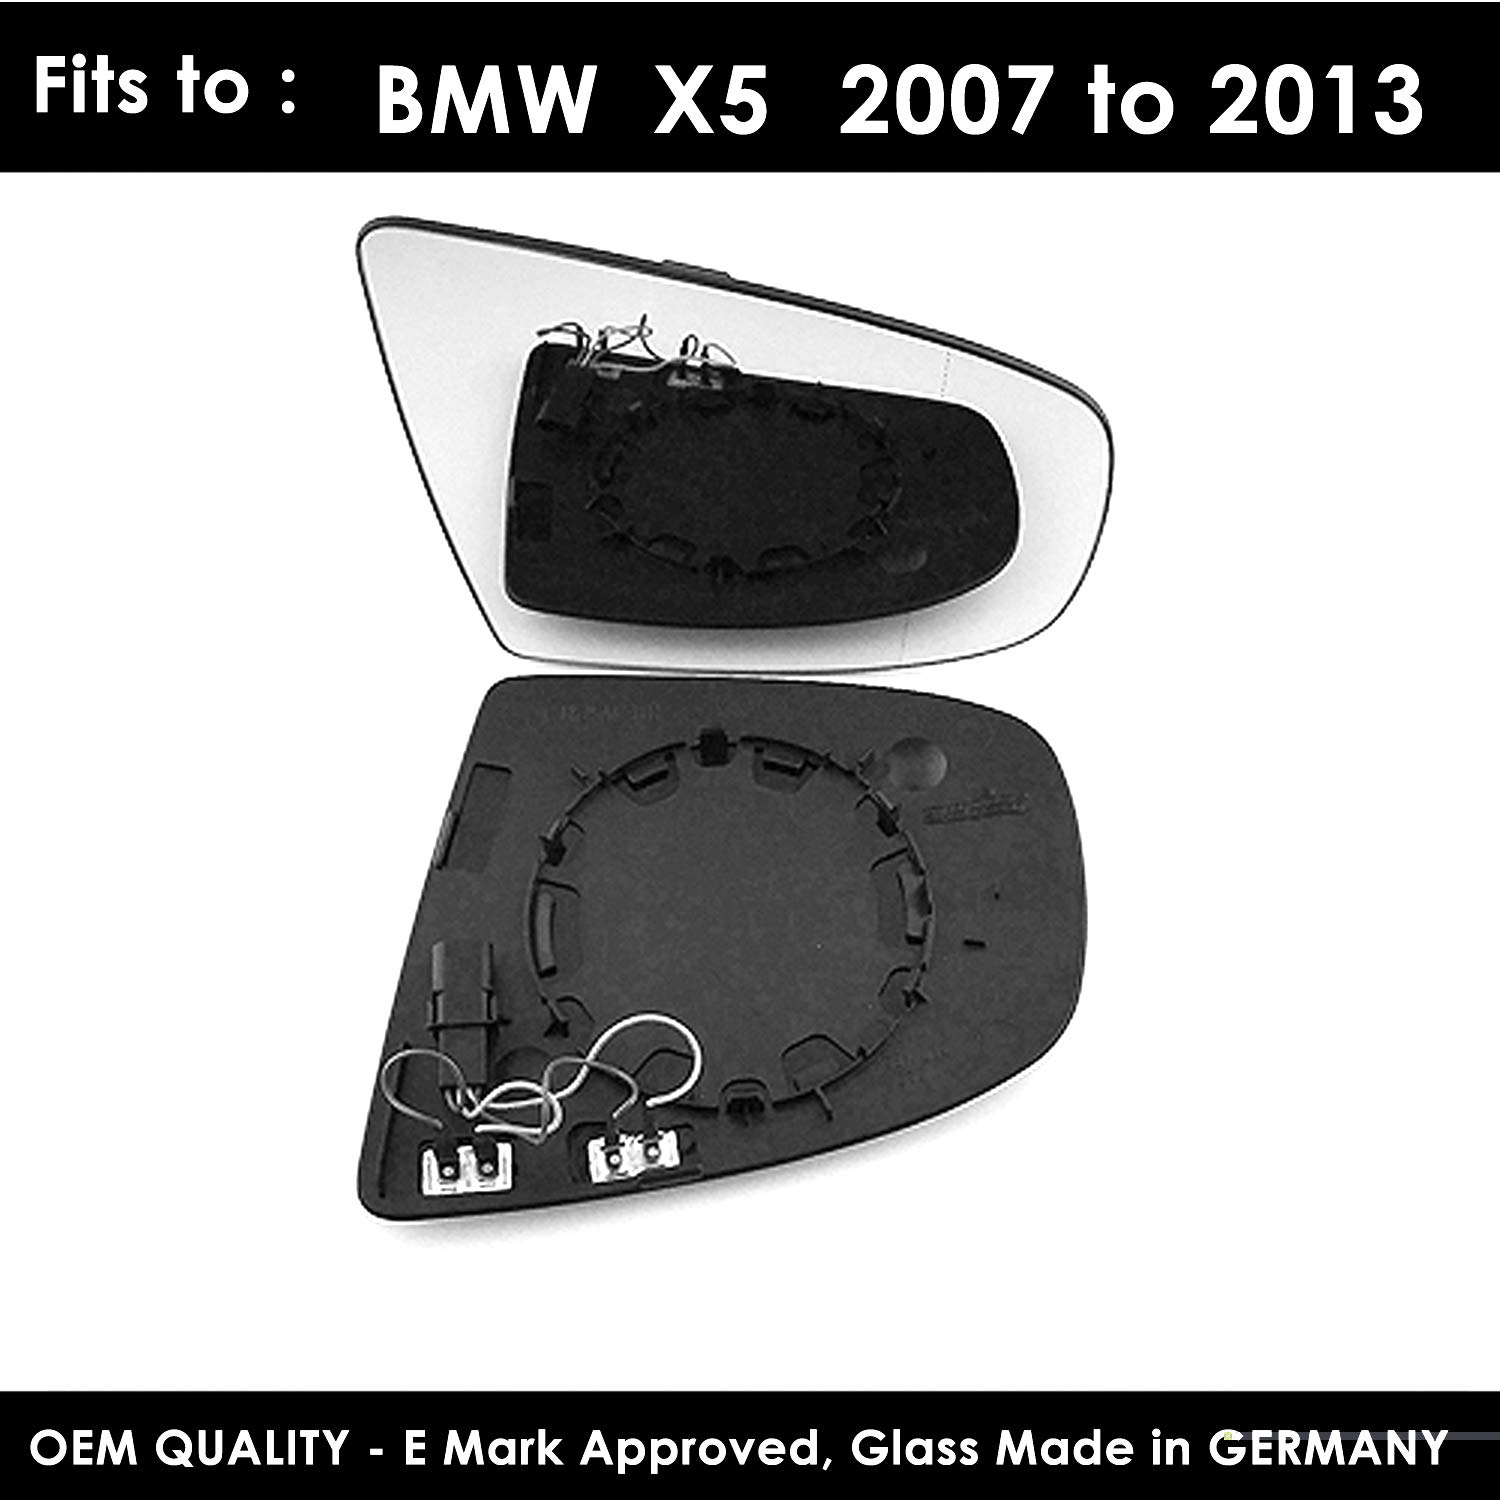 TWMC-XS 2007 to 2013 Heated Driver Side Door Wing Mirror Glass Including Base Plate RH